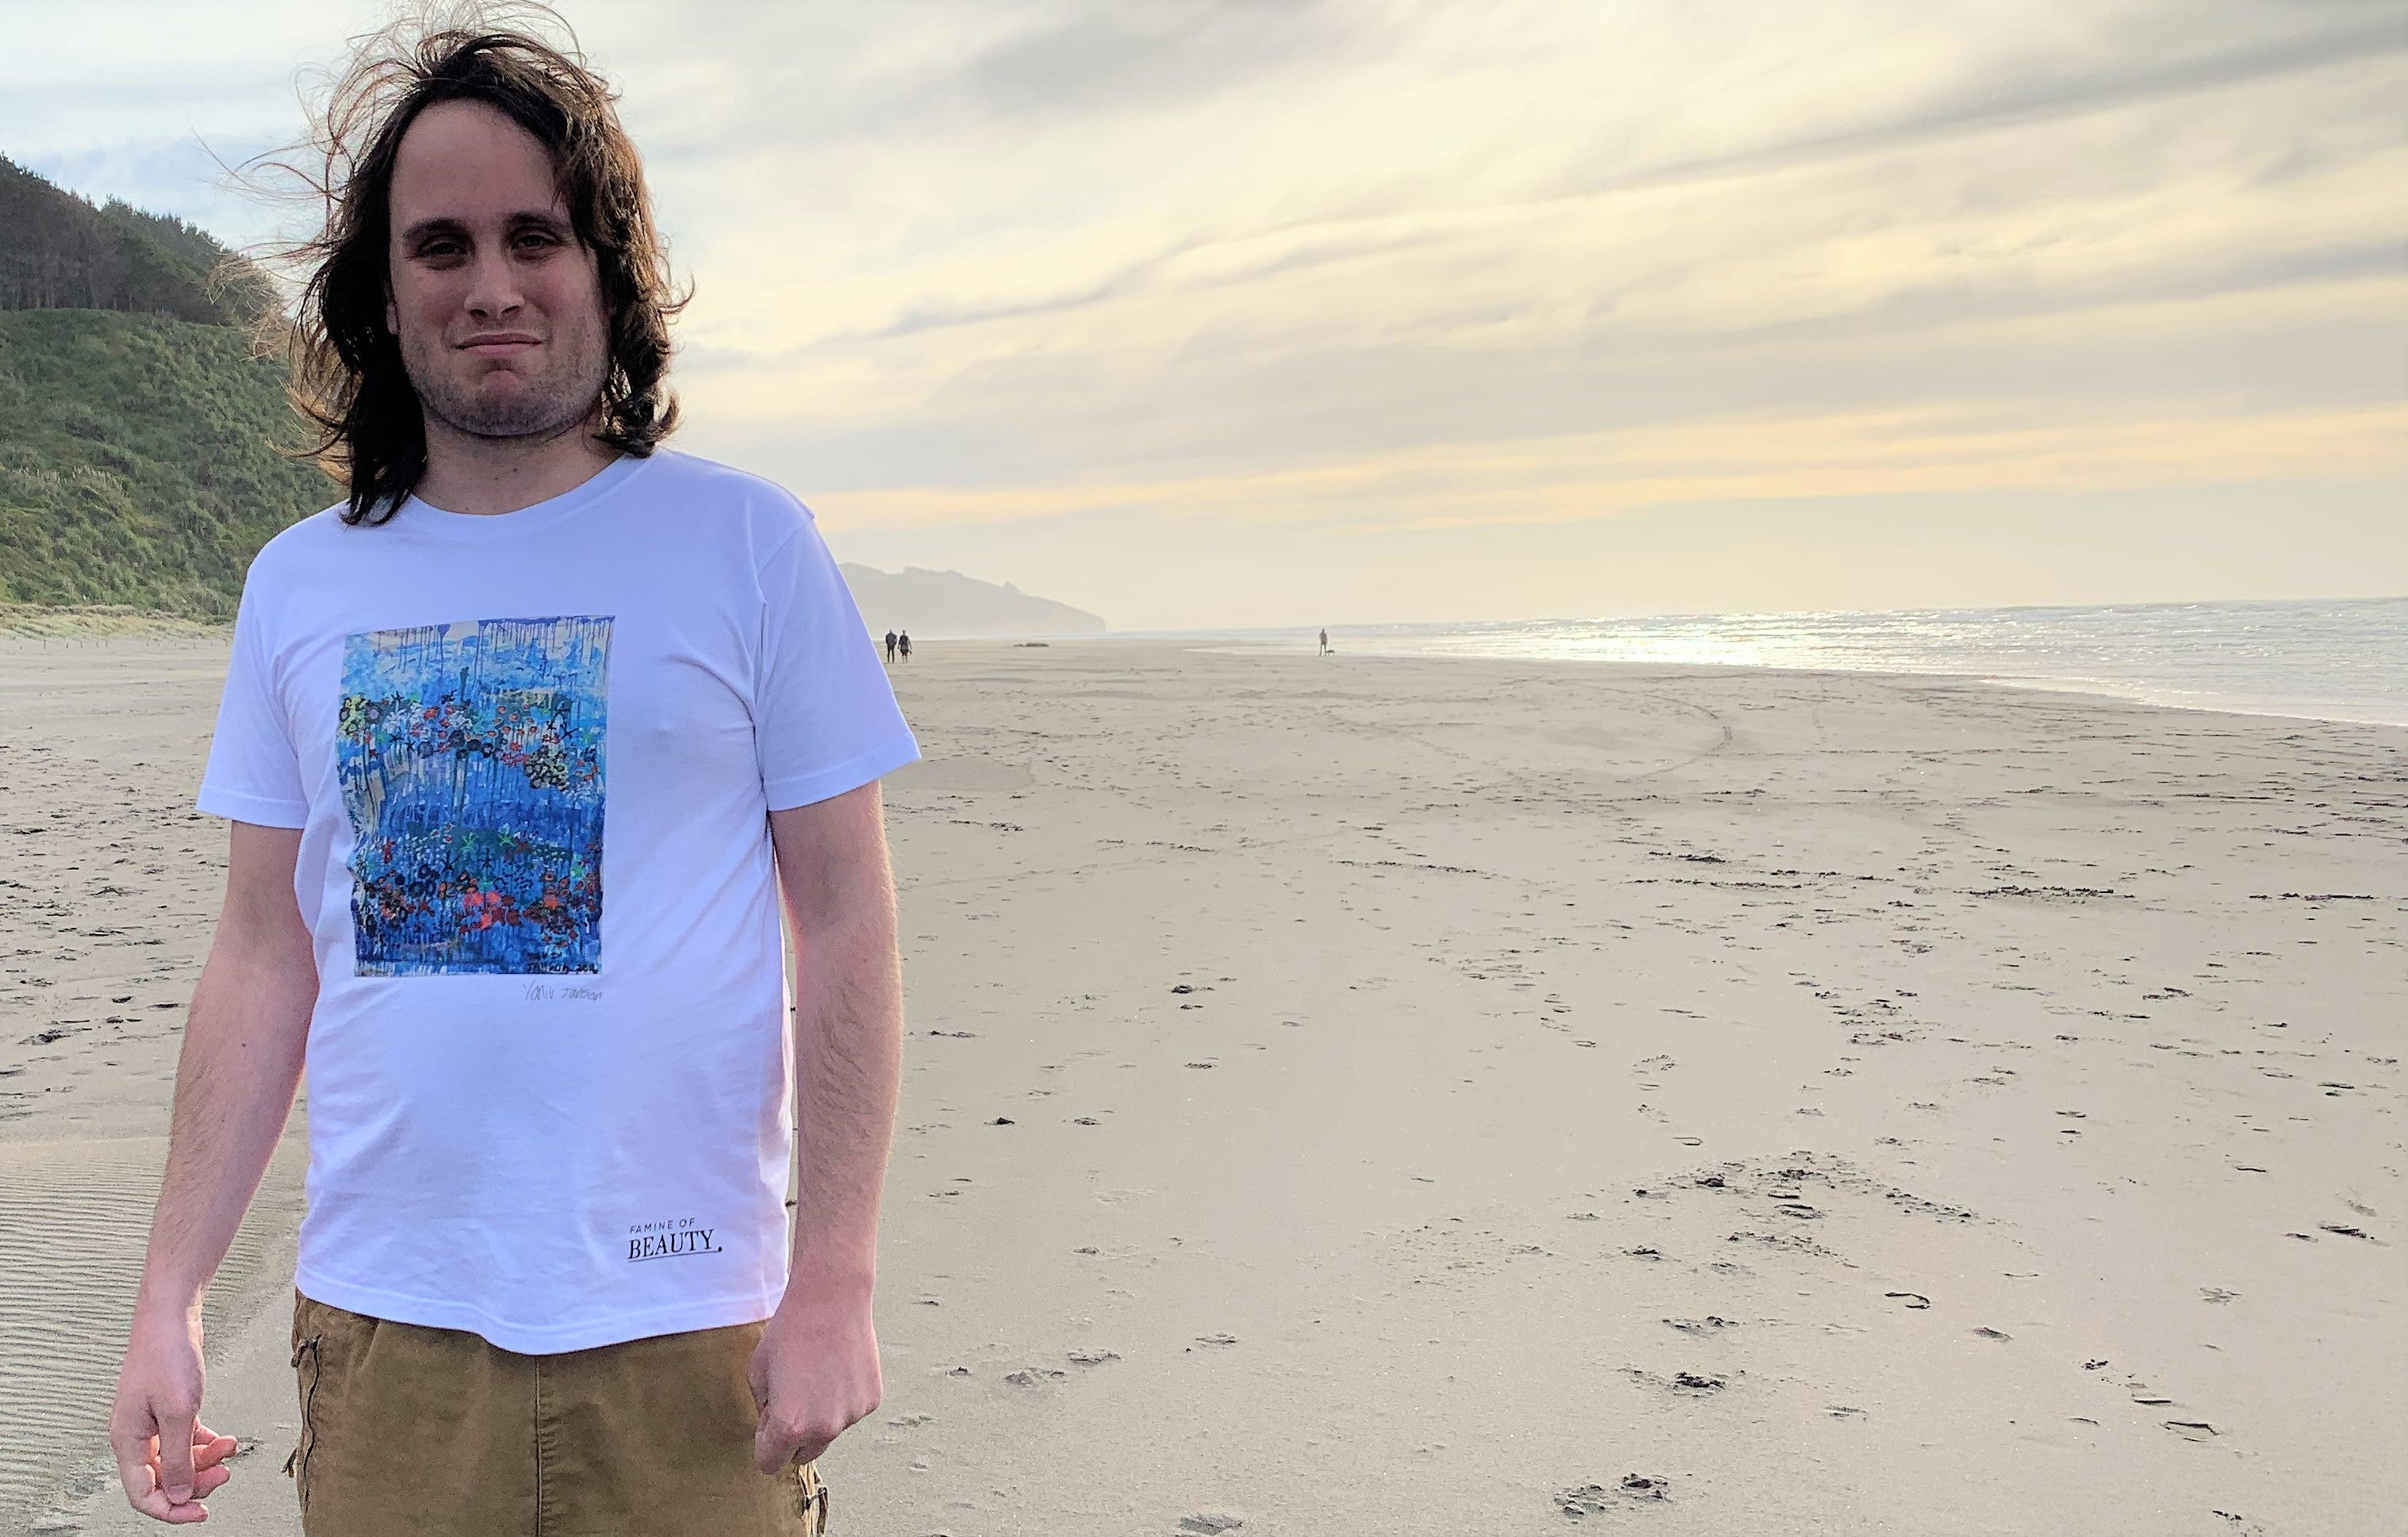 A Happy Sea T-Shirt